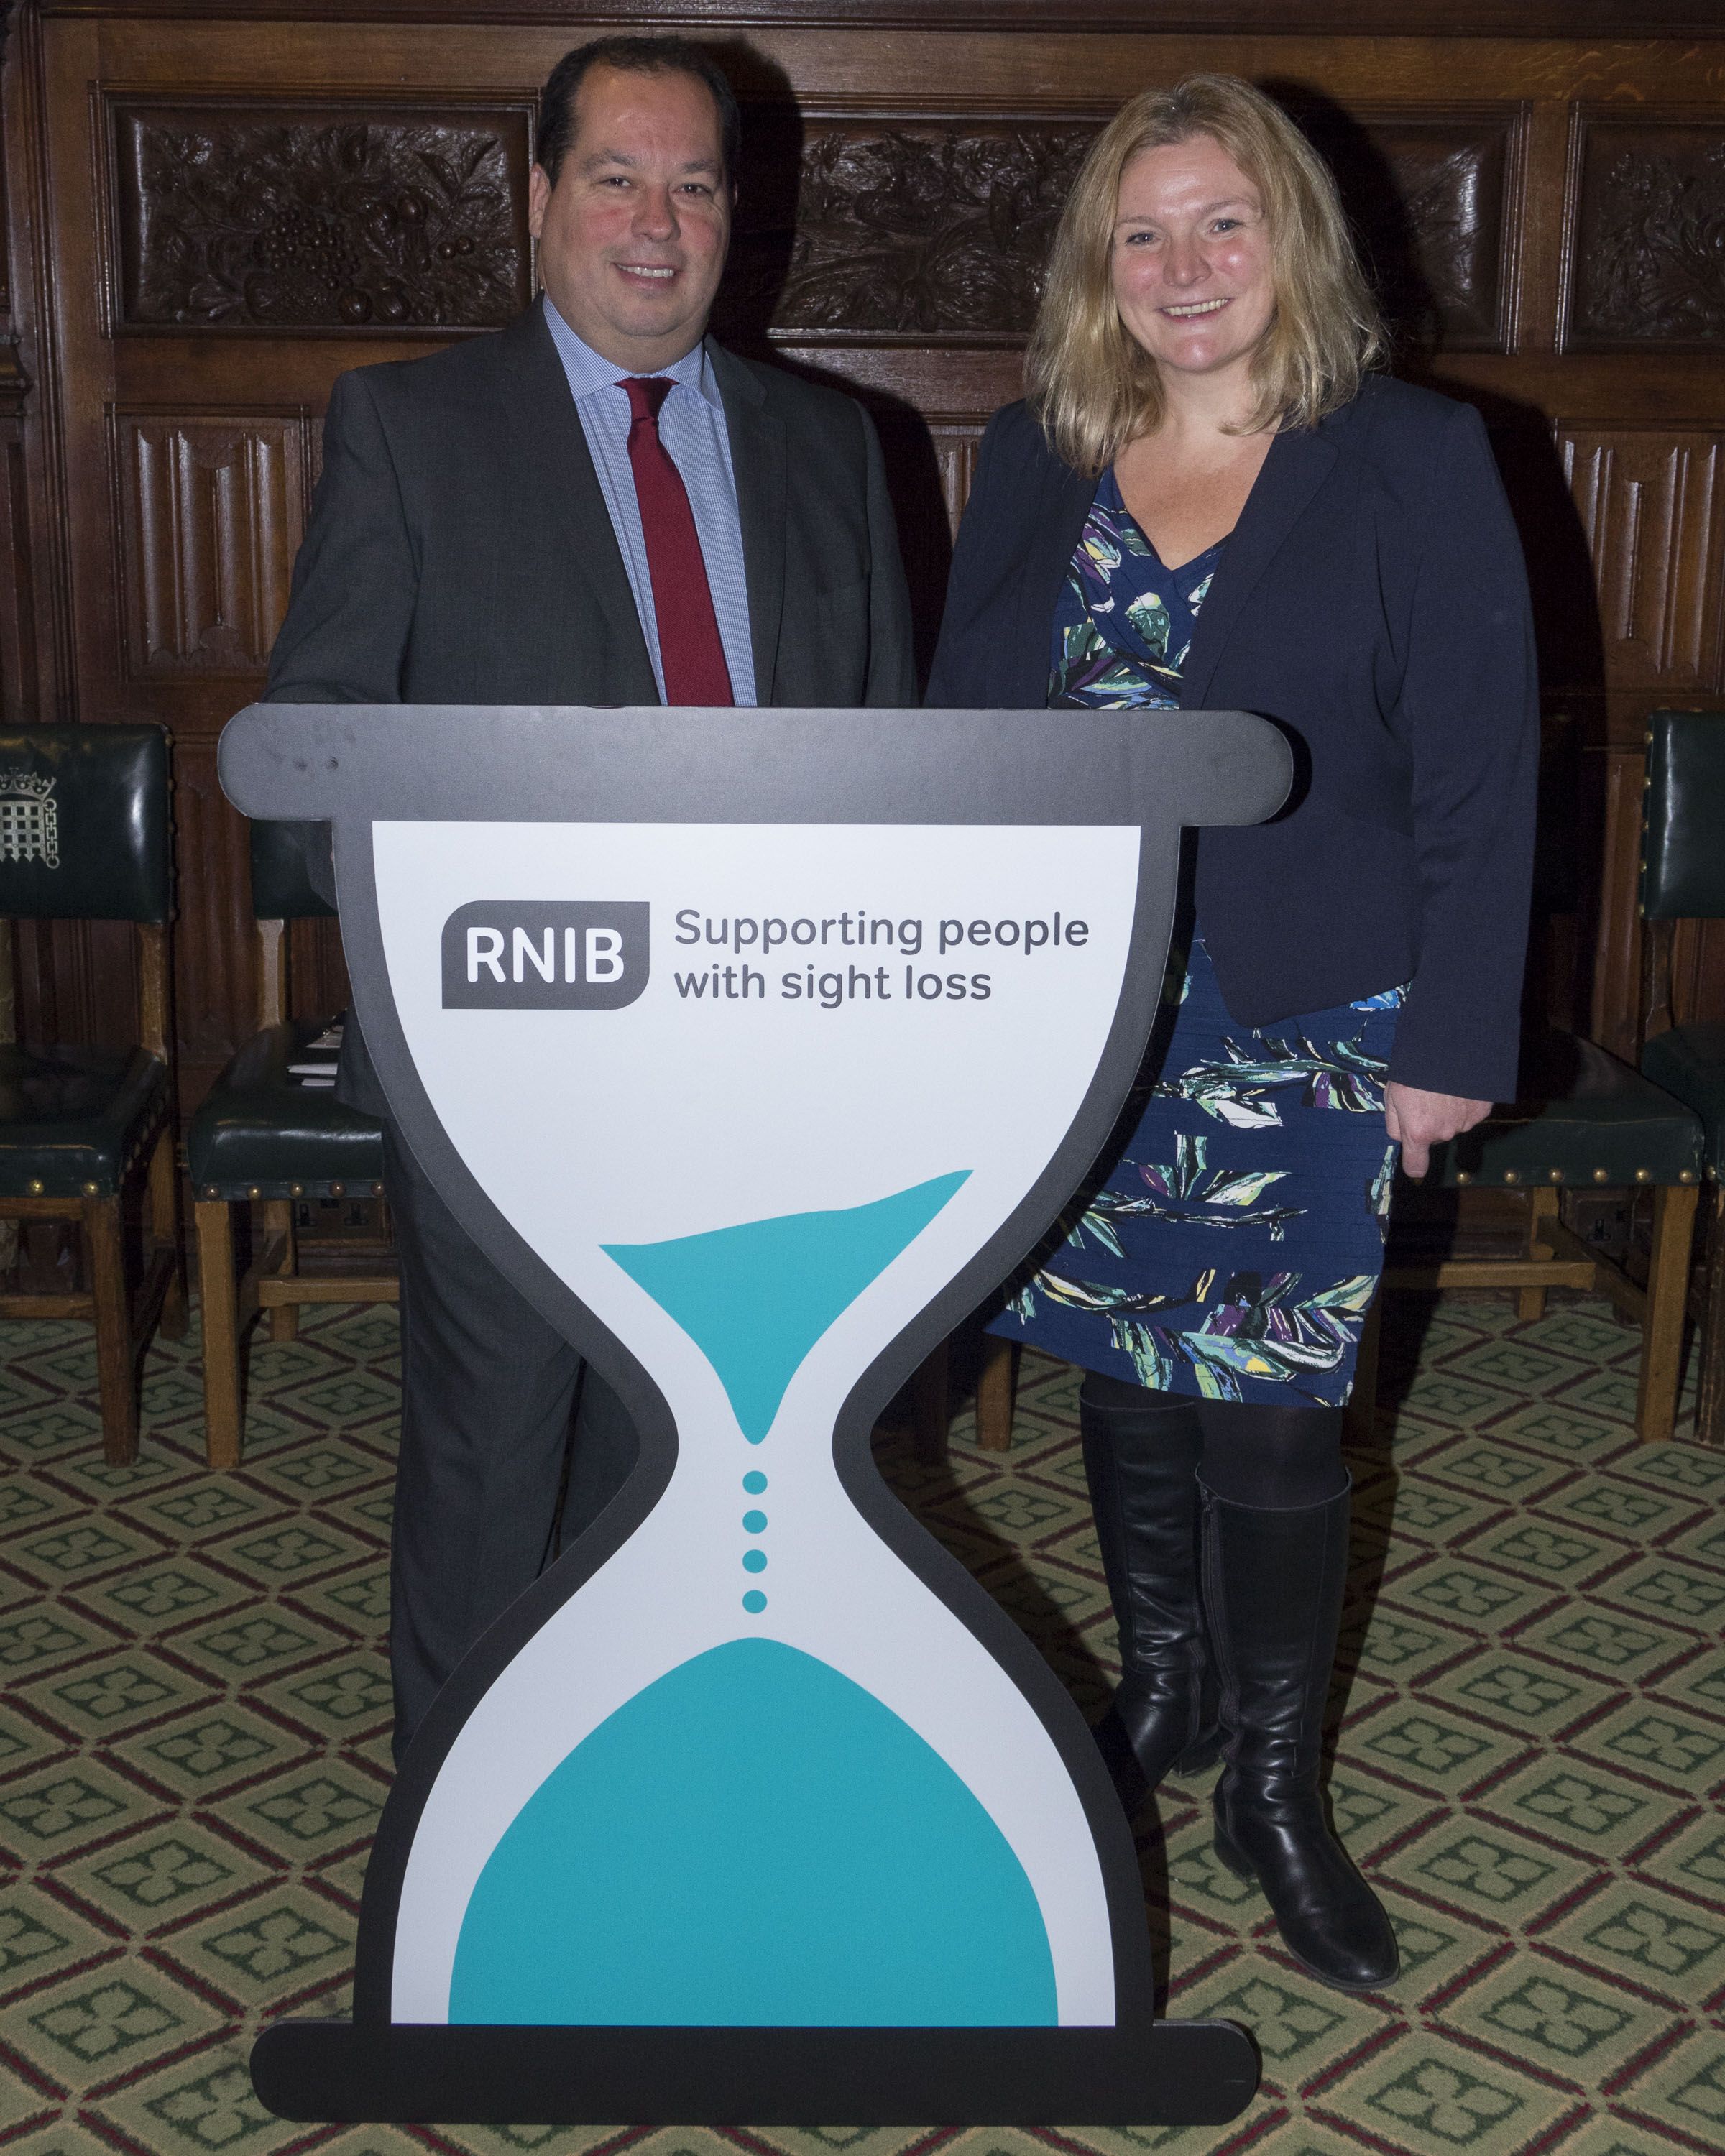 Gerald_Jones_MP_and_Sally_Harvey_RNIB_Acting_CEO_(002).jpg